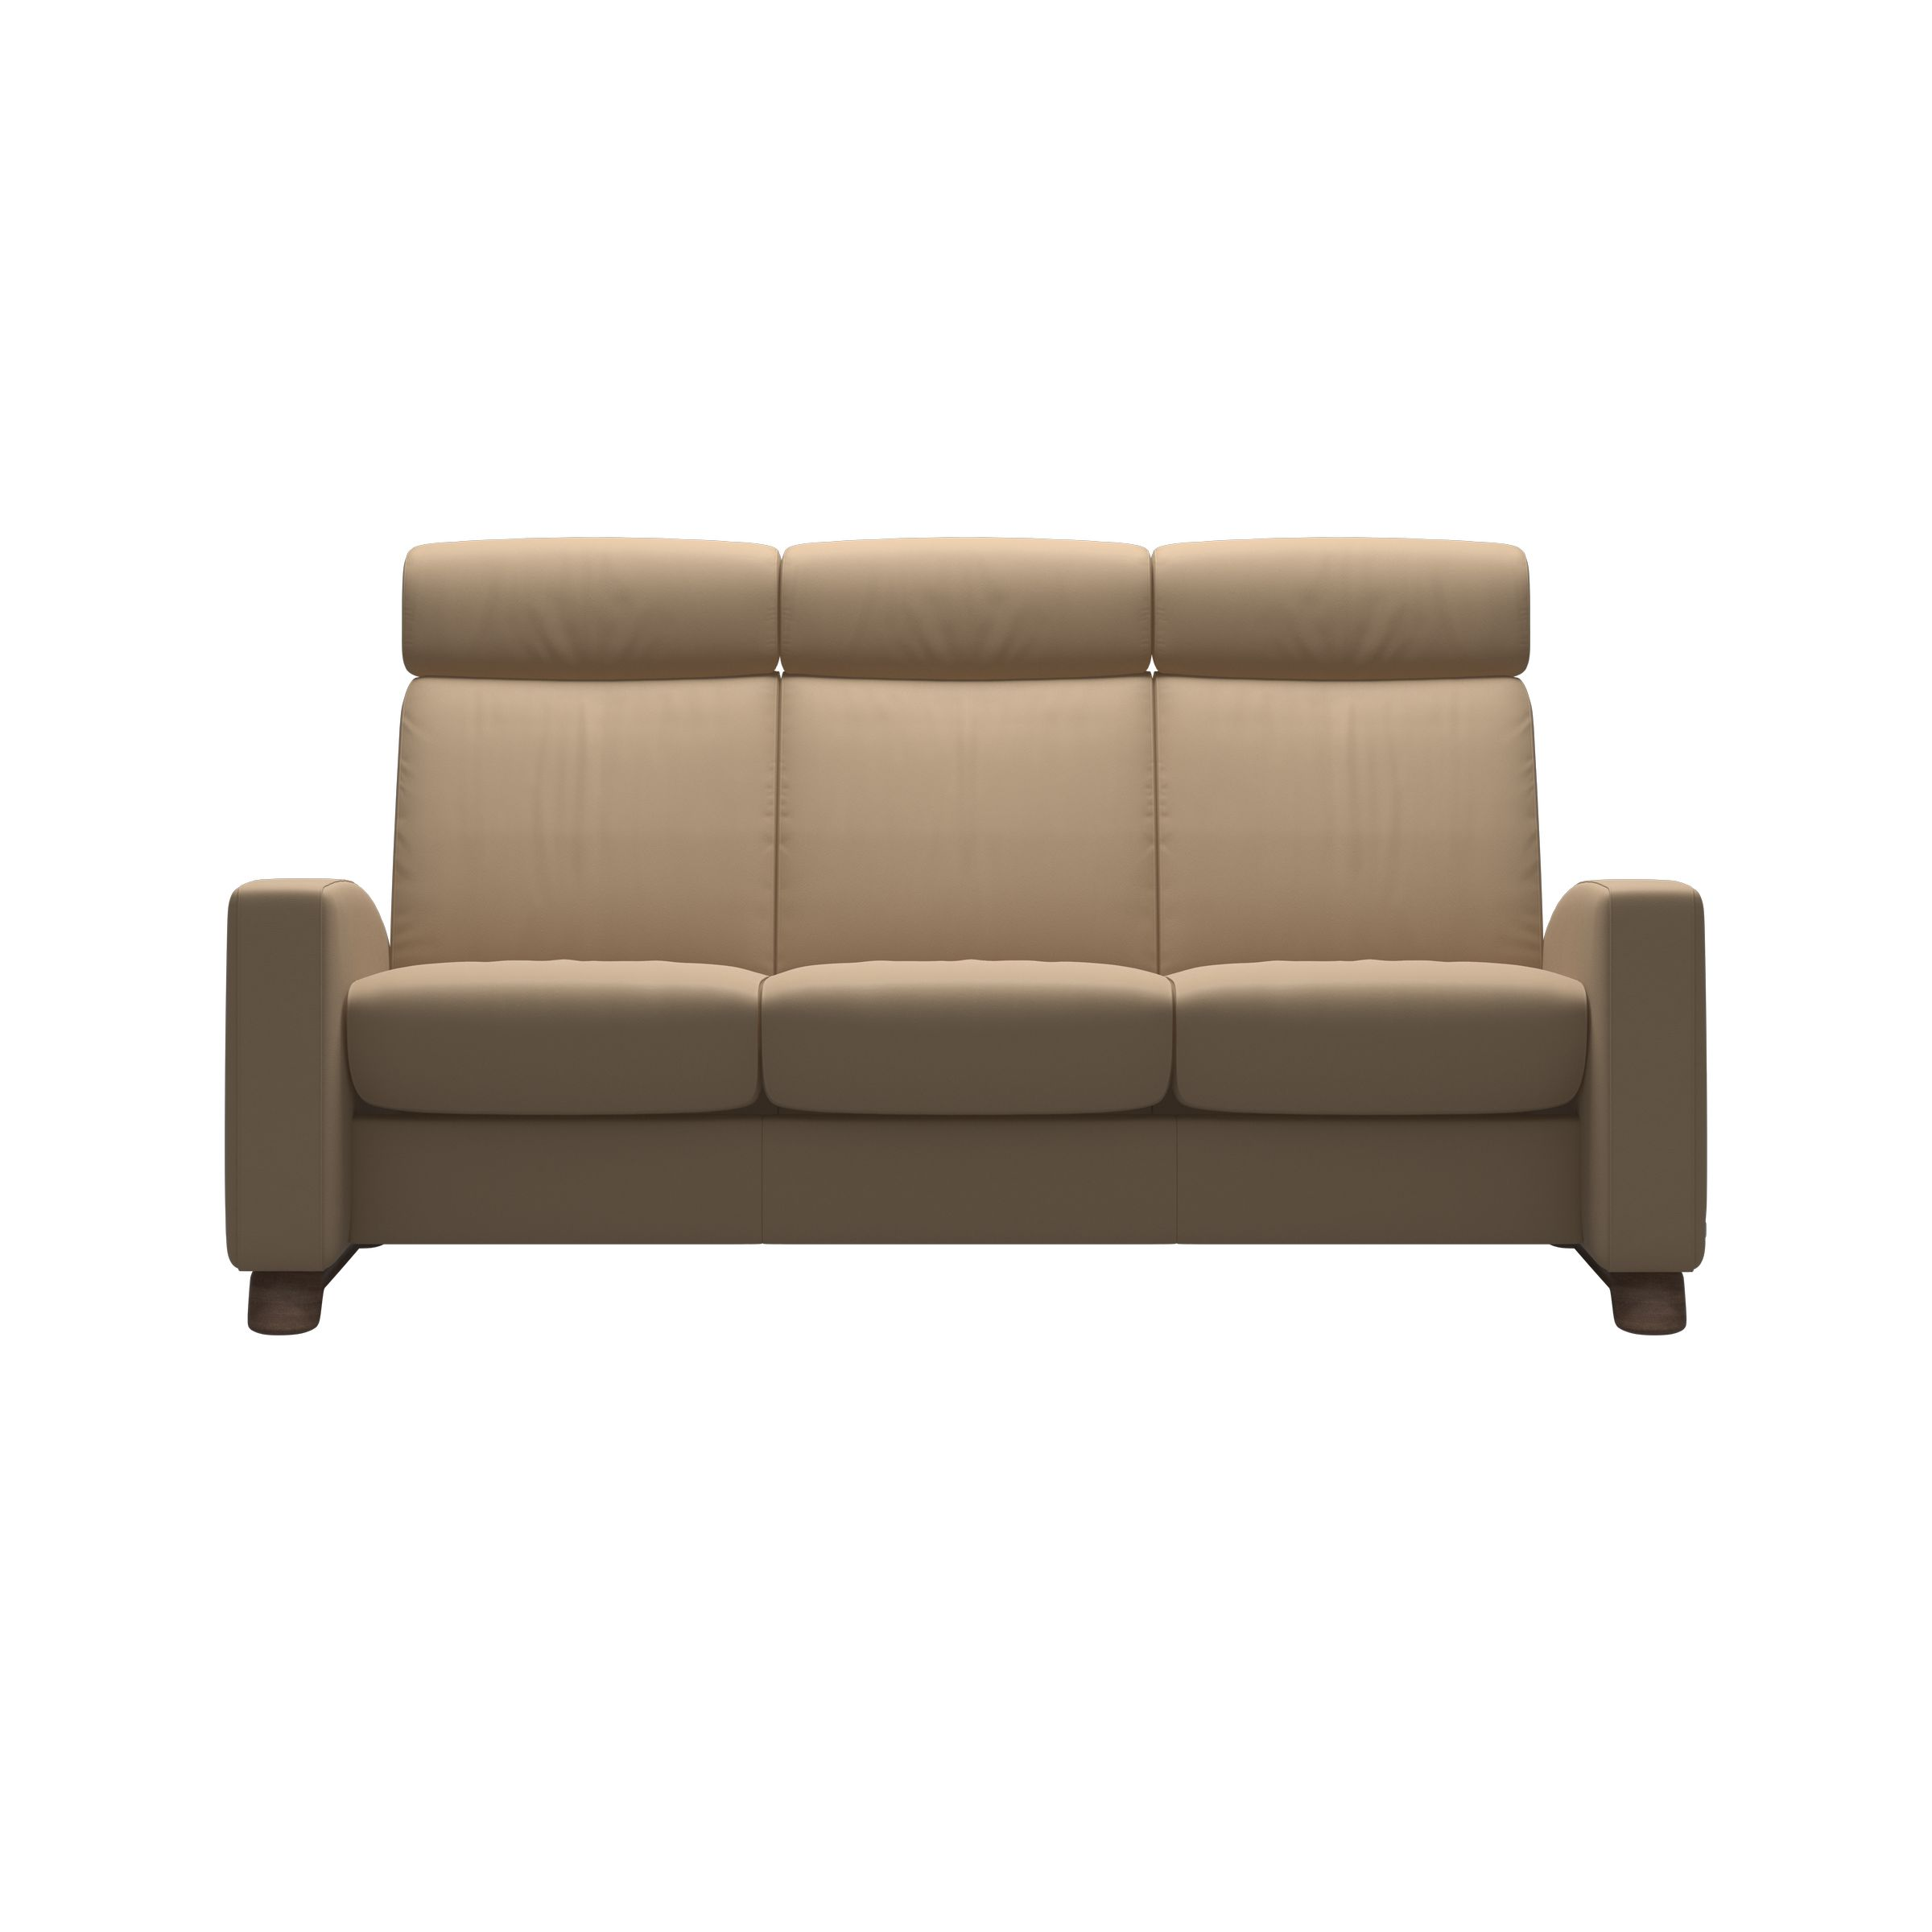 Kinosofa 4 Sitzer Stressless Arion Sofas